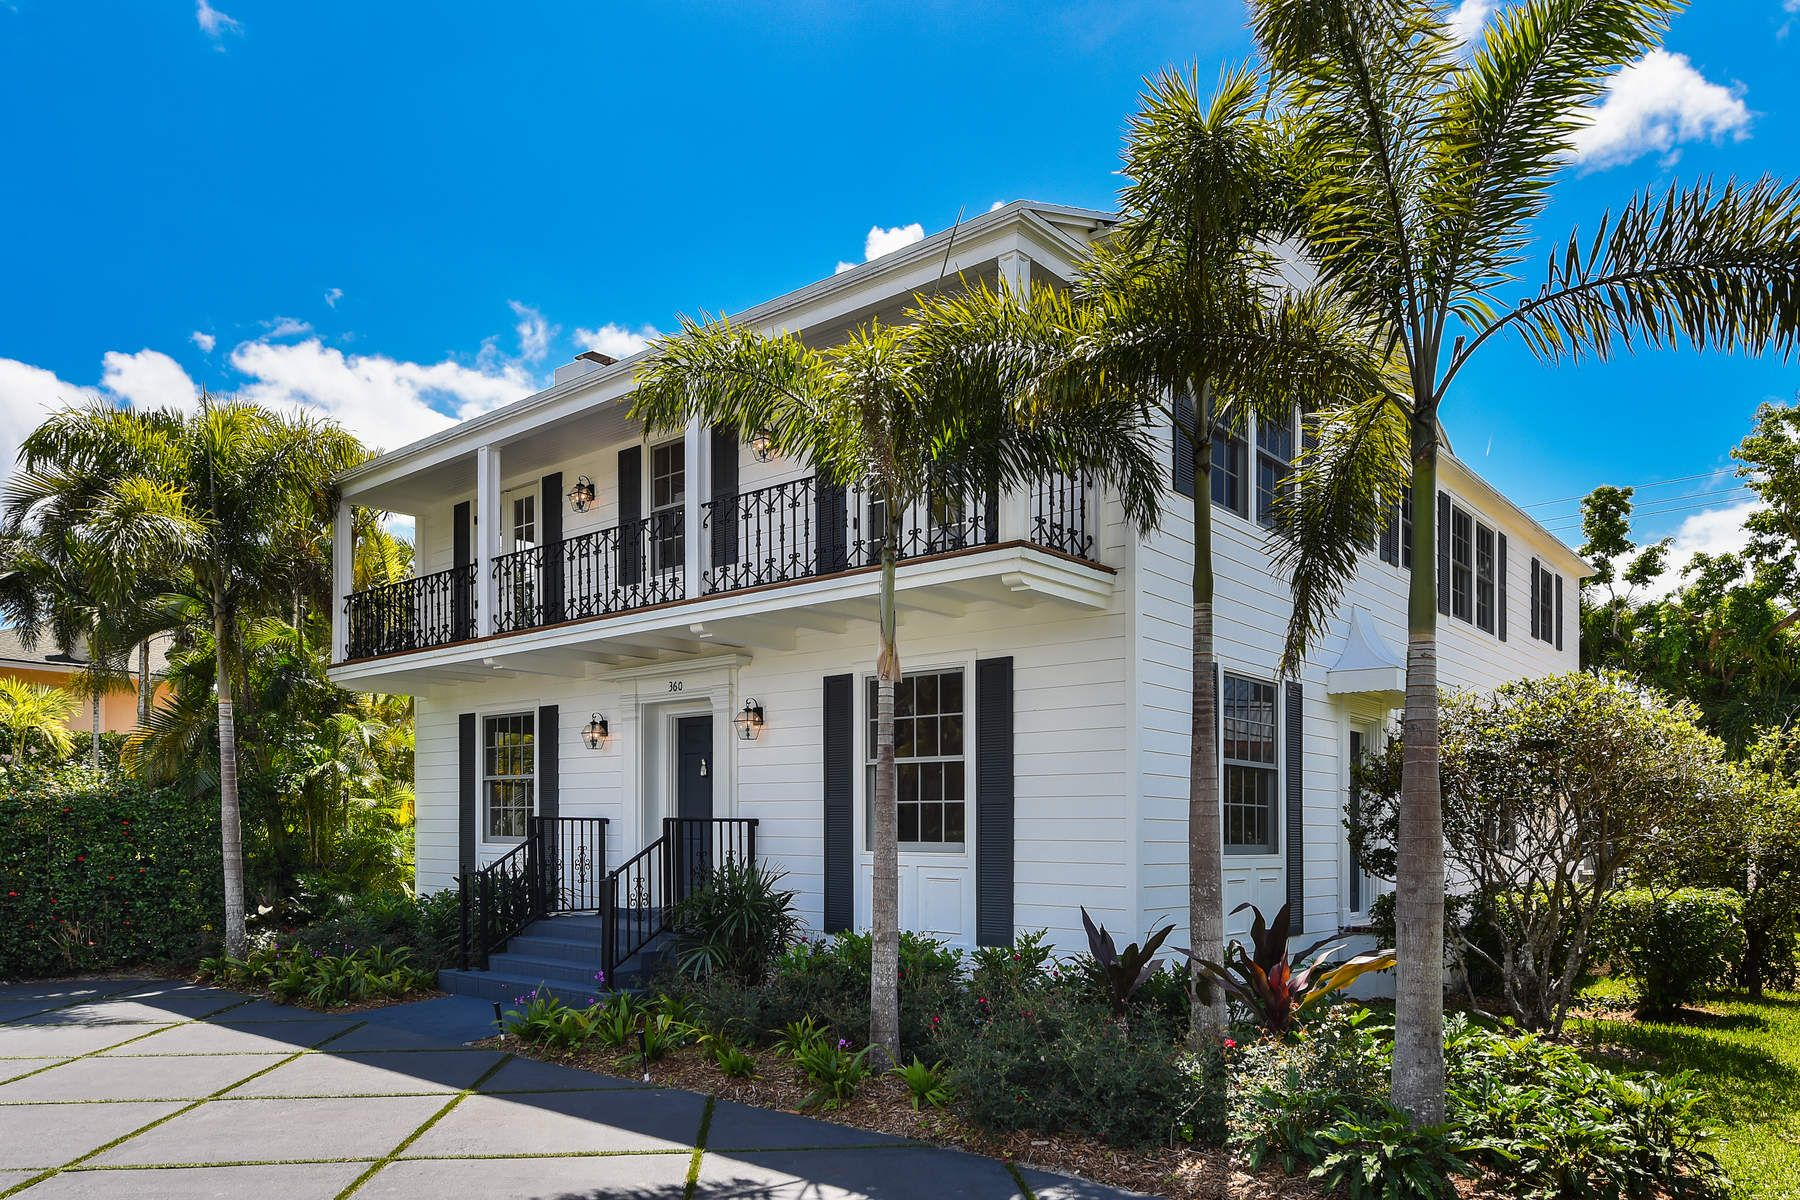 Single Family Home for Sale at Stunning New Palm Beach Renovation 360 Seaspray Ave Palm Beach, Florida 33480 United States